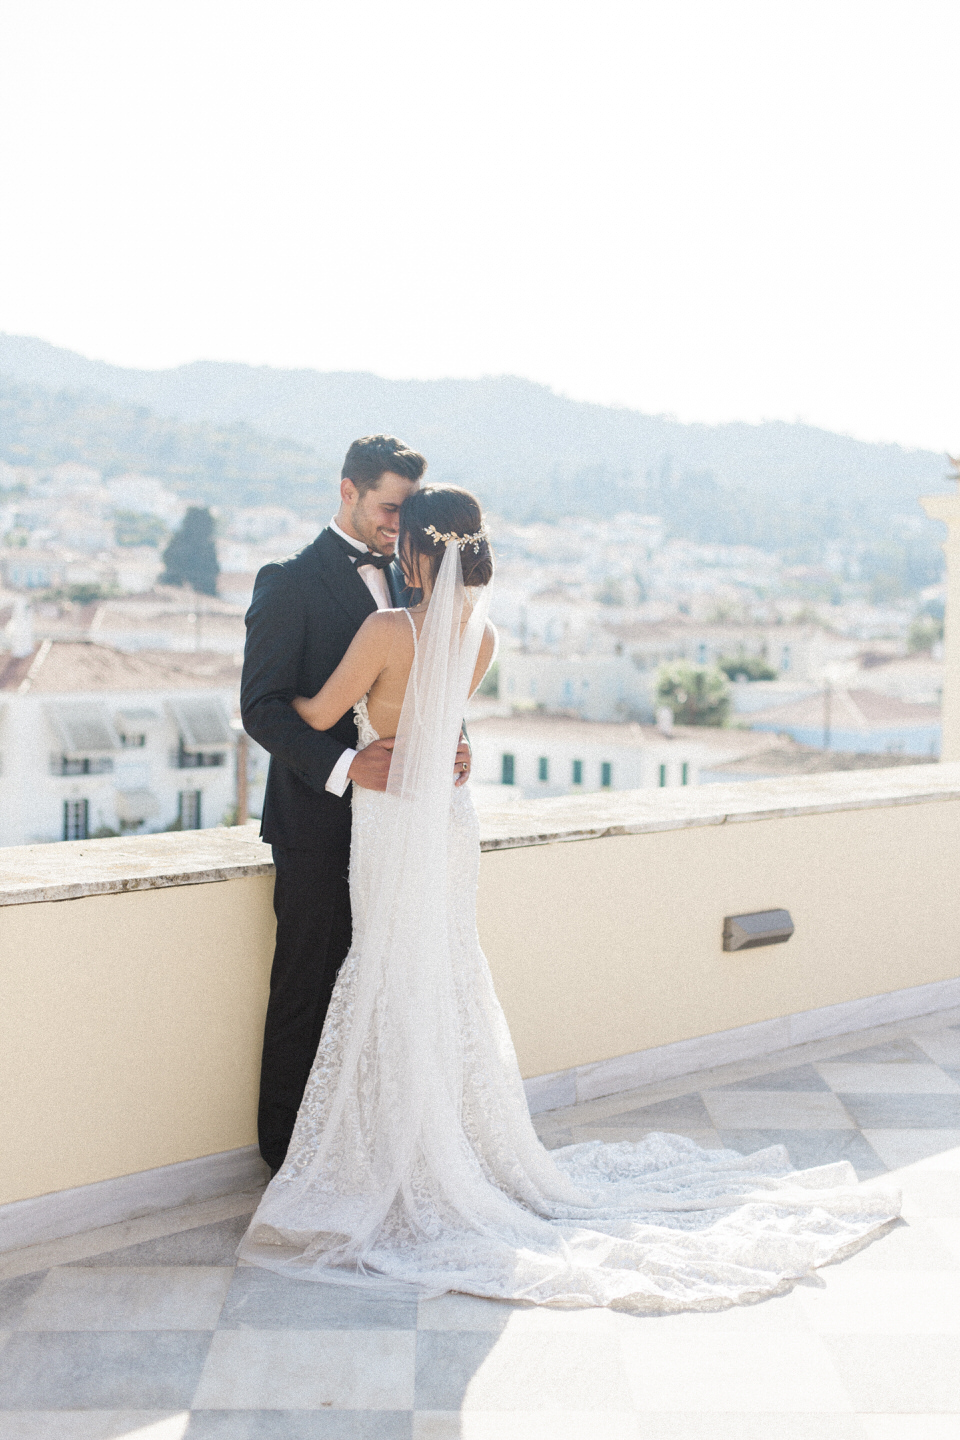 Chic Wedding at Poseidonion Grand Hotel in Spetses by Fiorello Photography